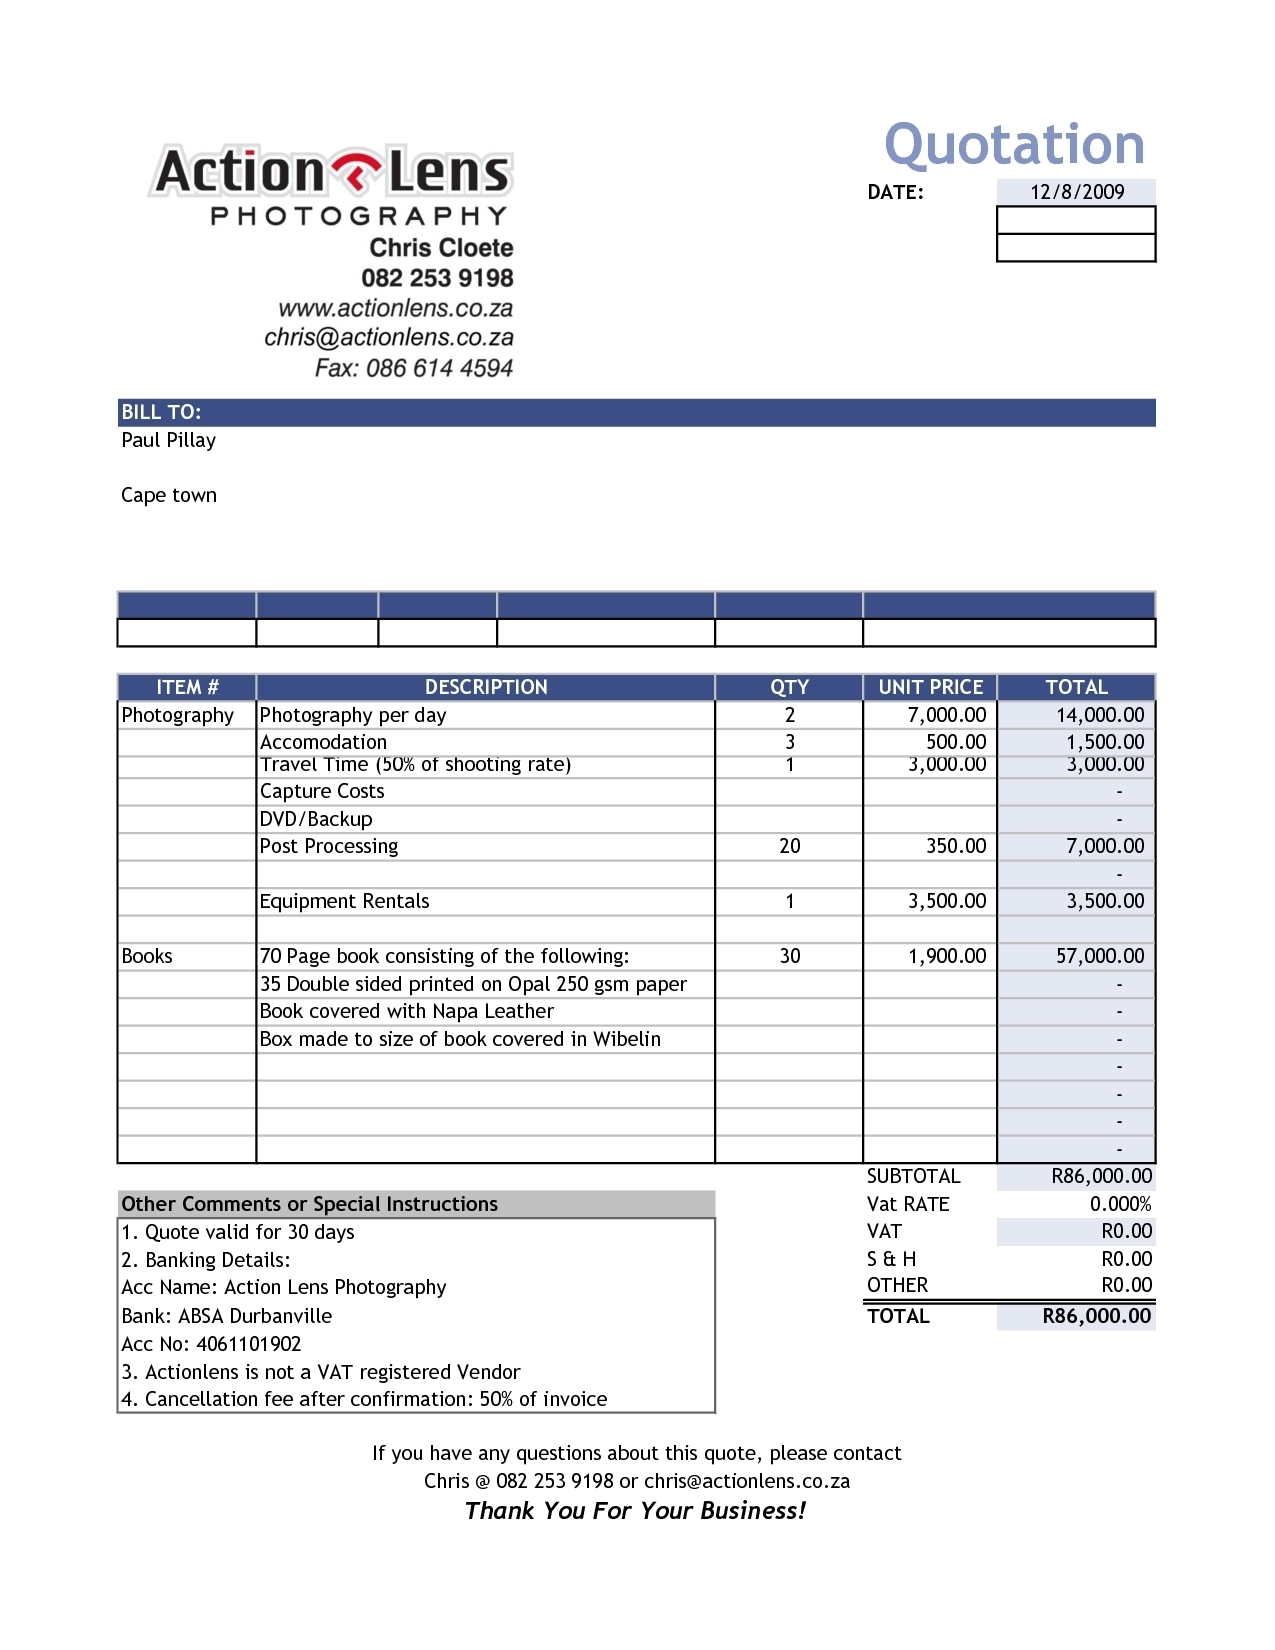 retail invoice format in excel sheet free download design free download invoice template excel